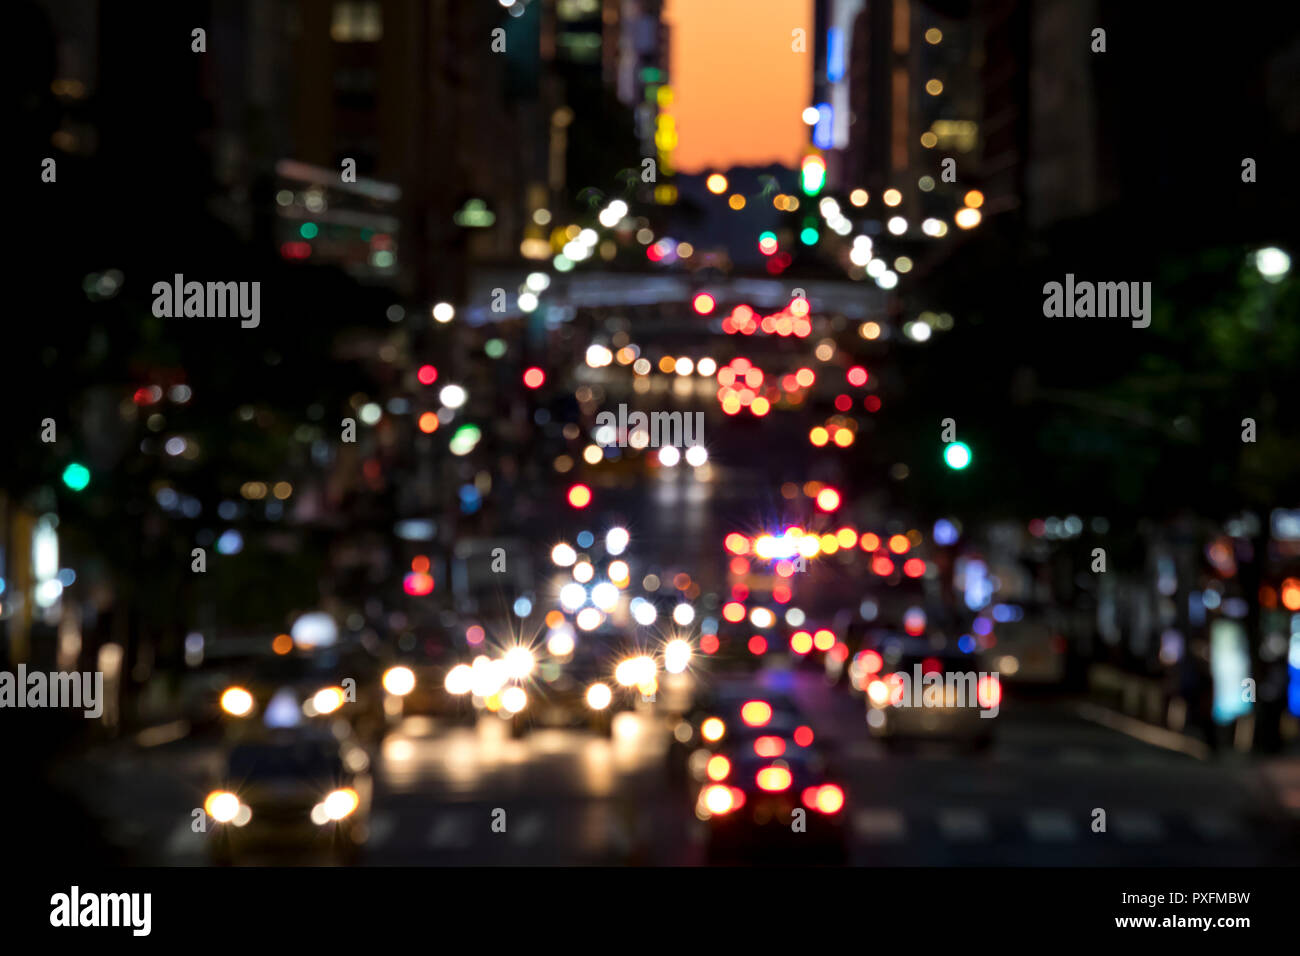 Abstract blurred lights of a busy night street scene in Manhattan New York City - Stock Image